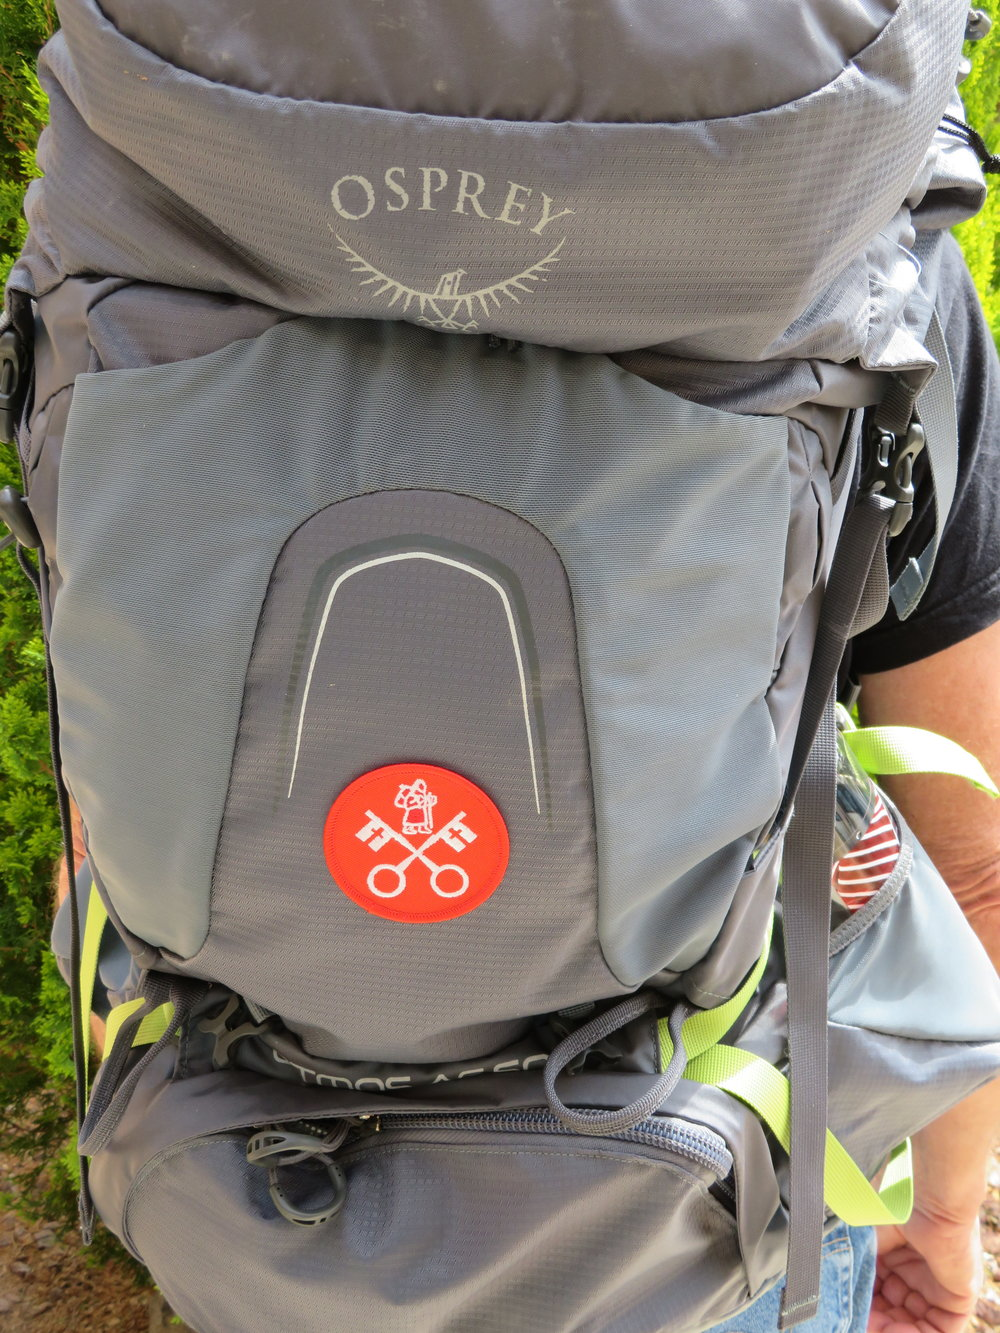 Last, but not least, I attached our Via Francigena pilgrim patches to our backpacks. They weigh only an ounce a piece. Well, worth the extra weight.